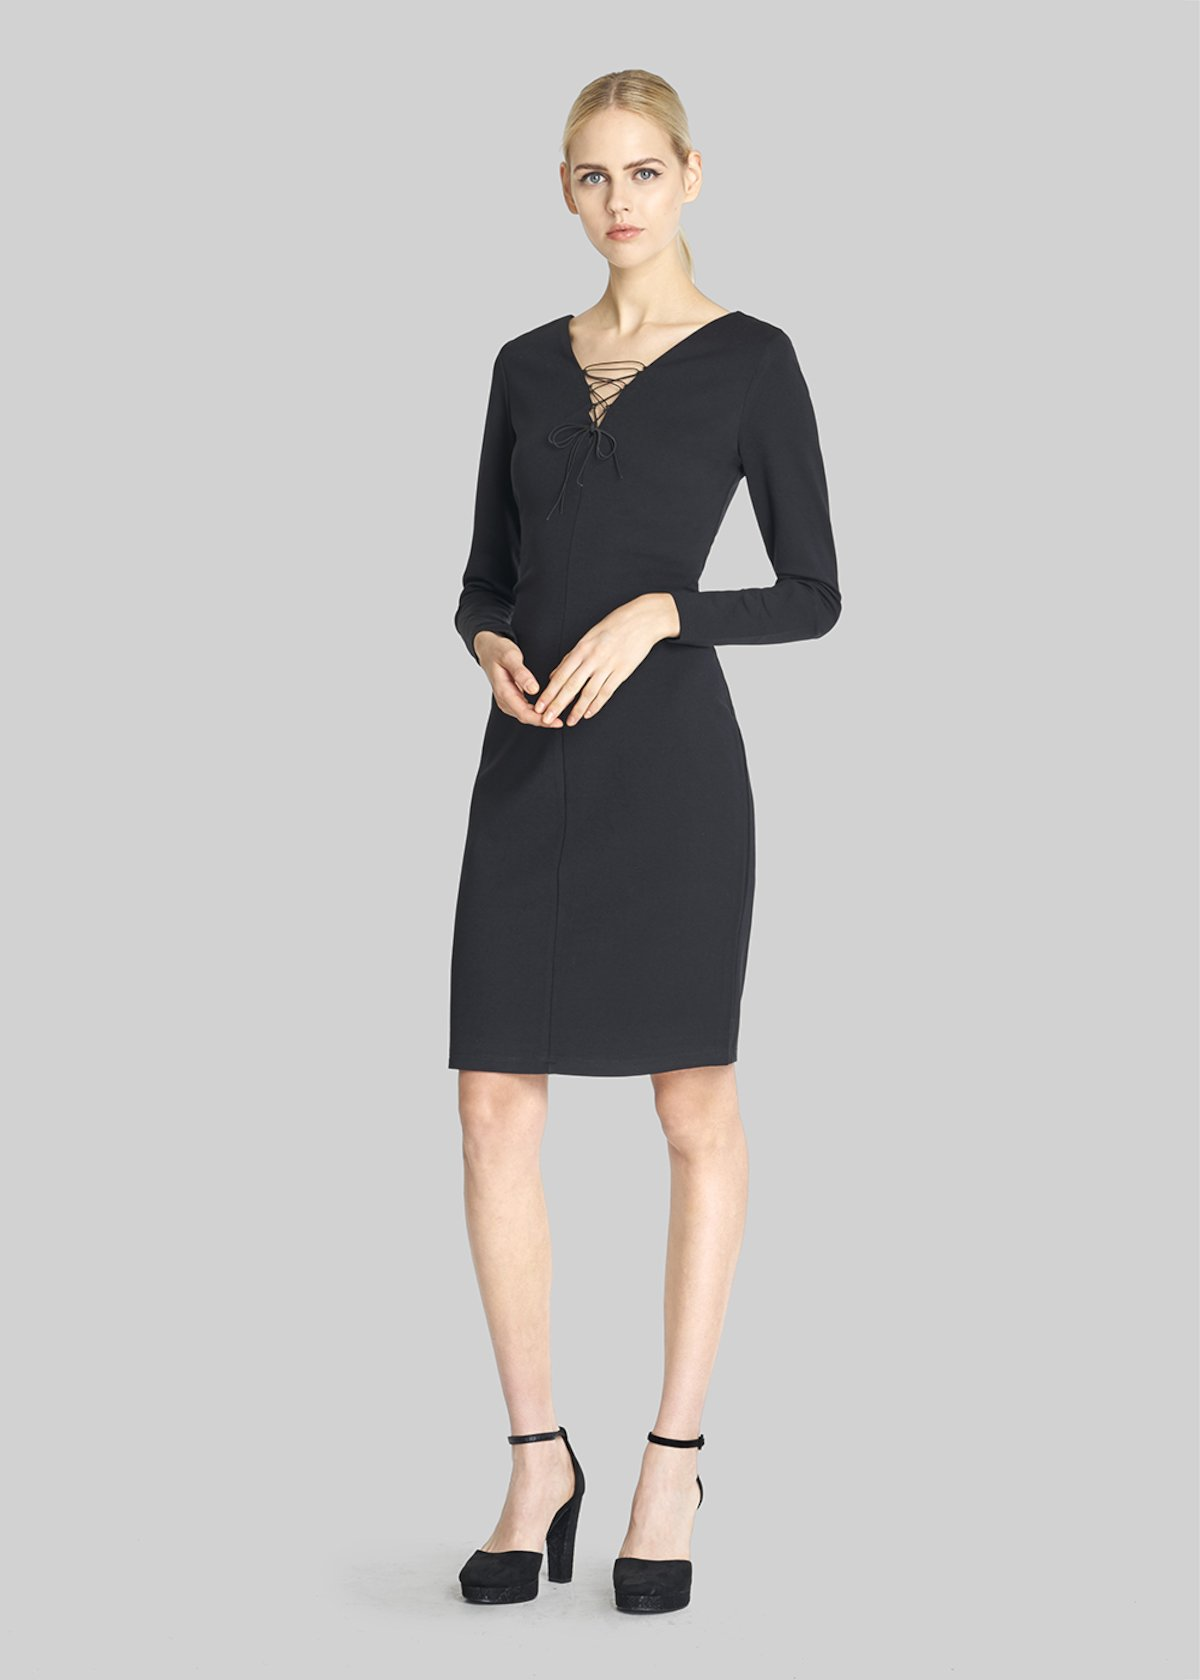 Alyson dress with criss-cross neckline detail